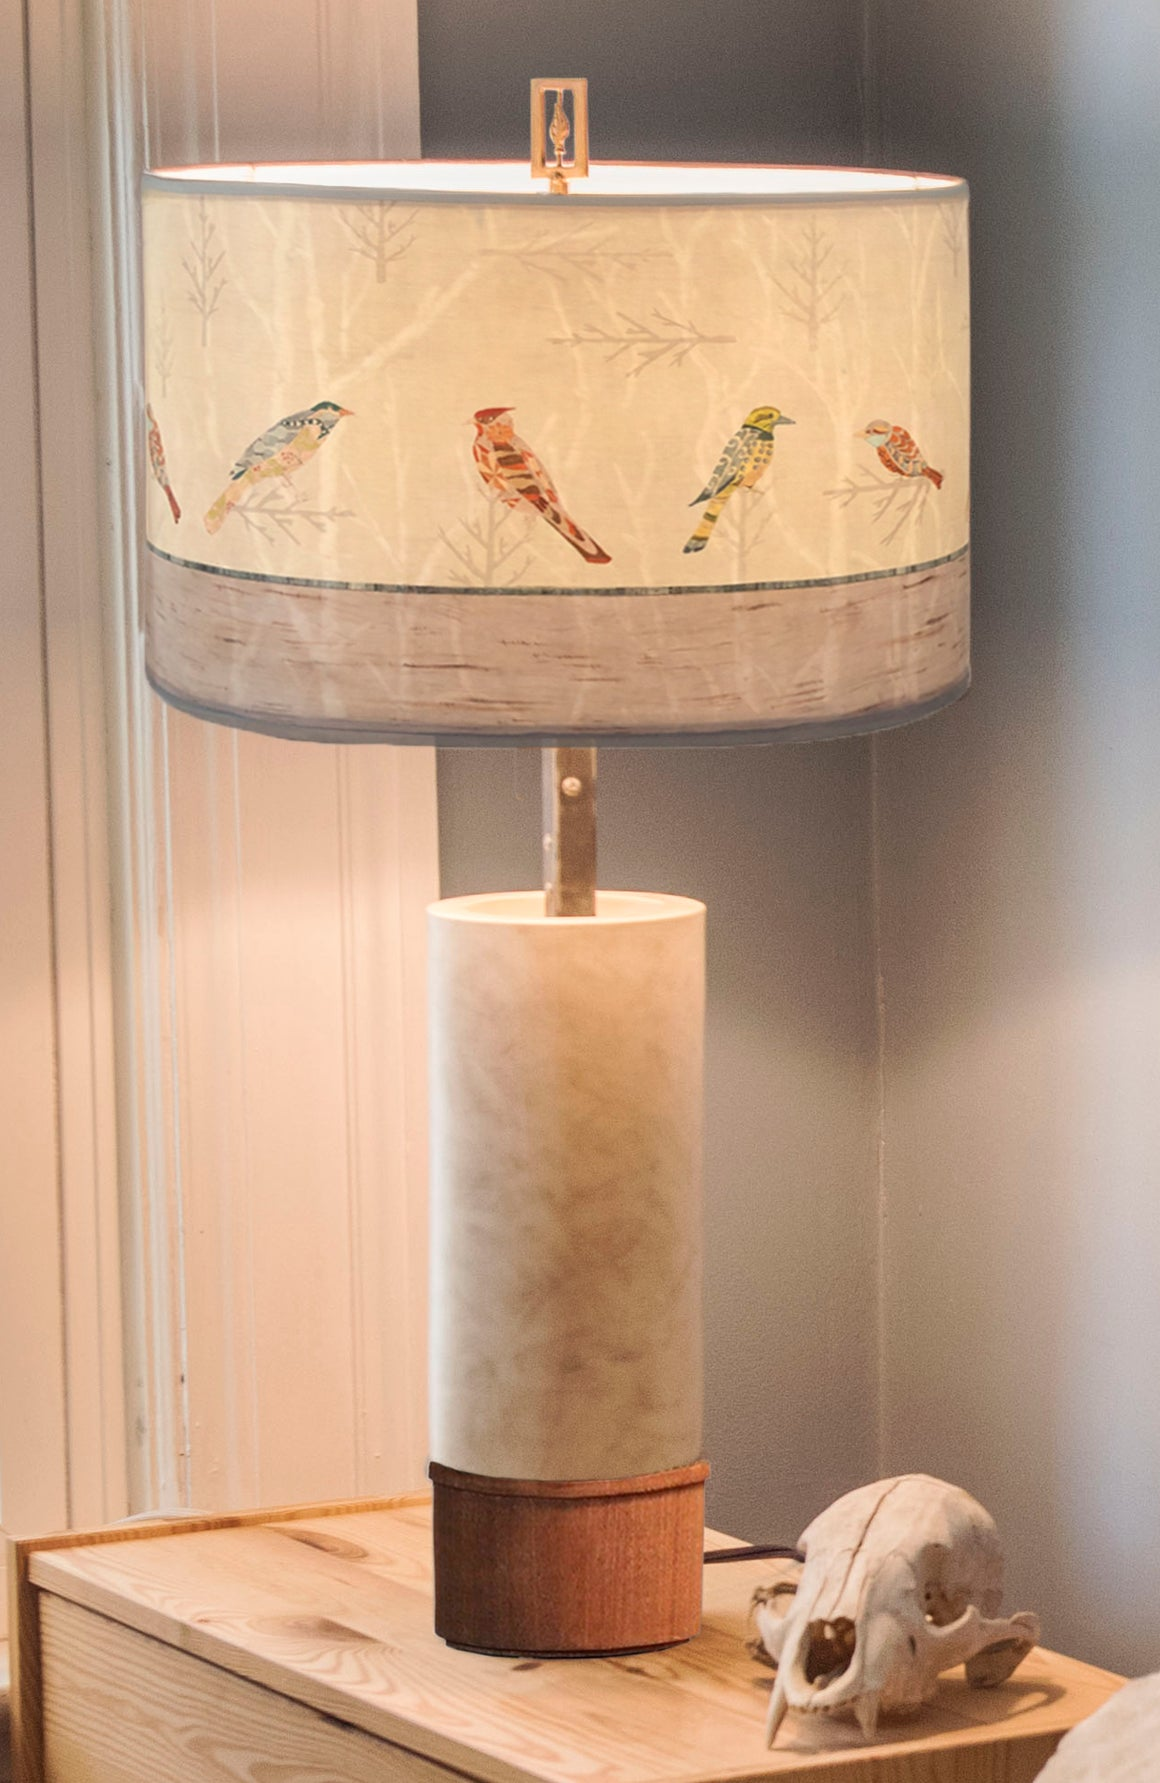 Ceramic and Wood Table Lamp with Large Drum Shade in Bird Friends